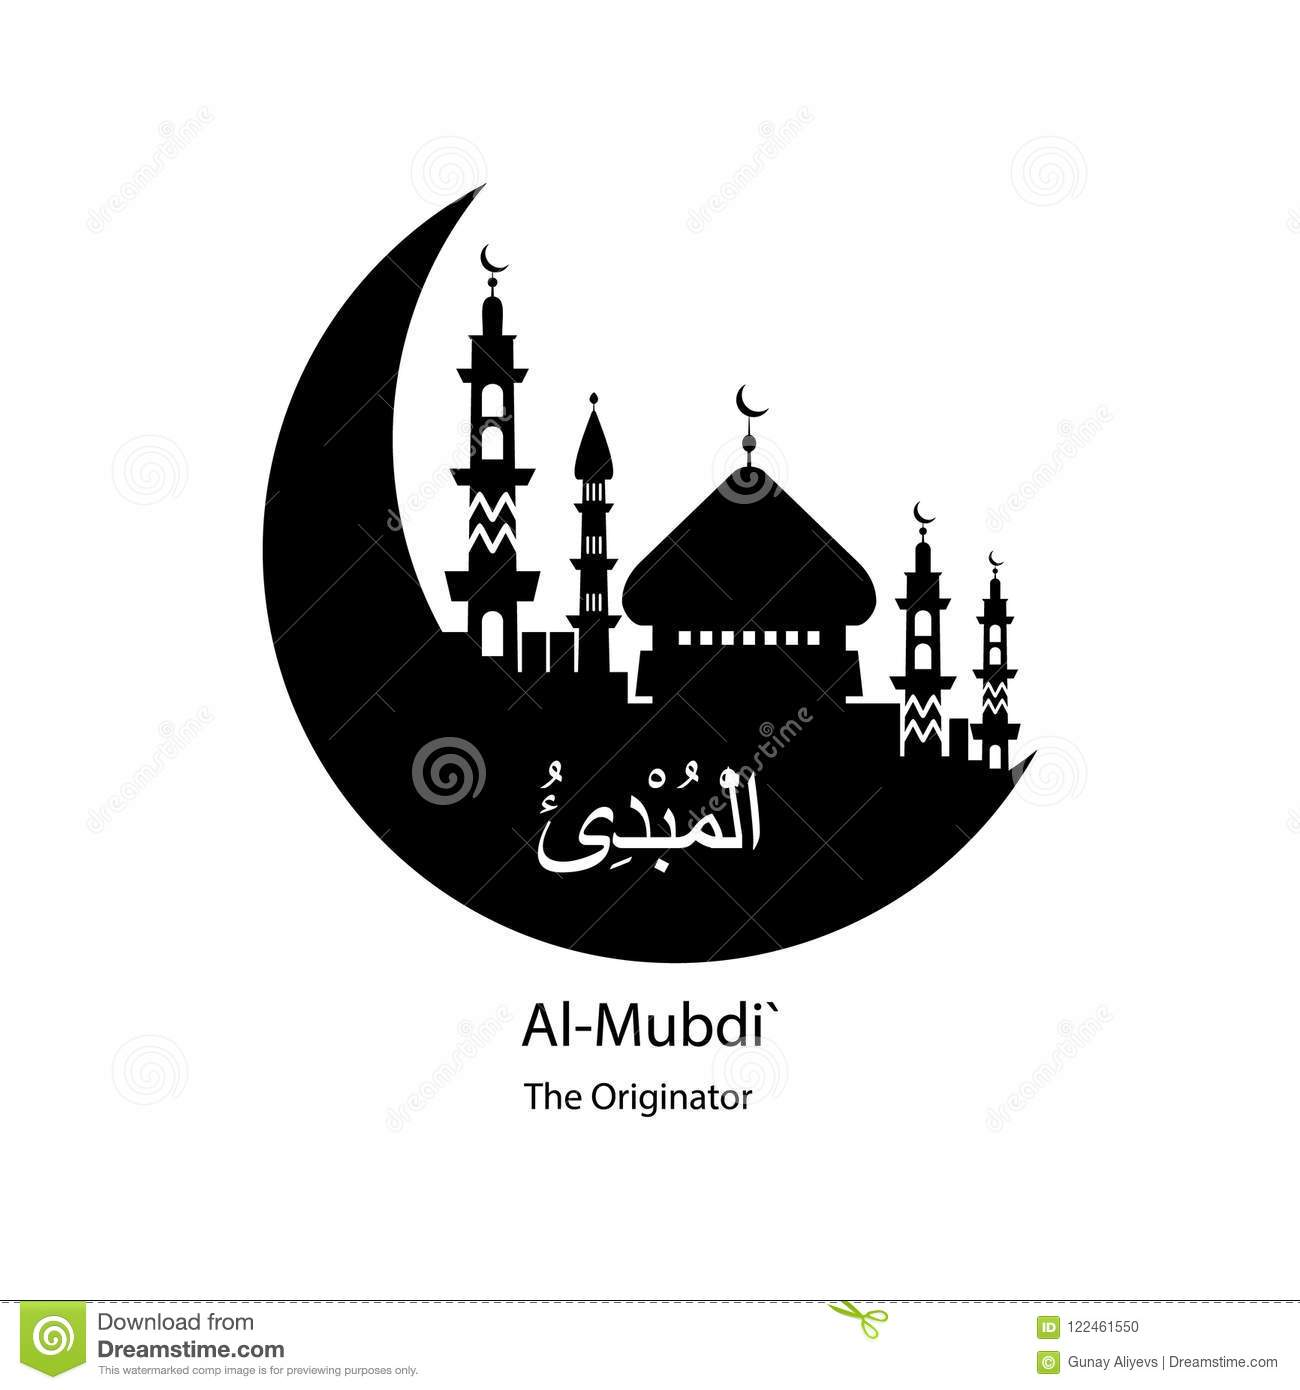 https www dreamstime com al mubdi allah name arabic writing against mosque illustration calligraphy god translation meaning english white image122461550